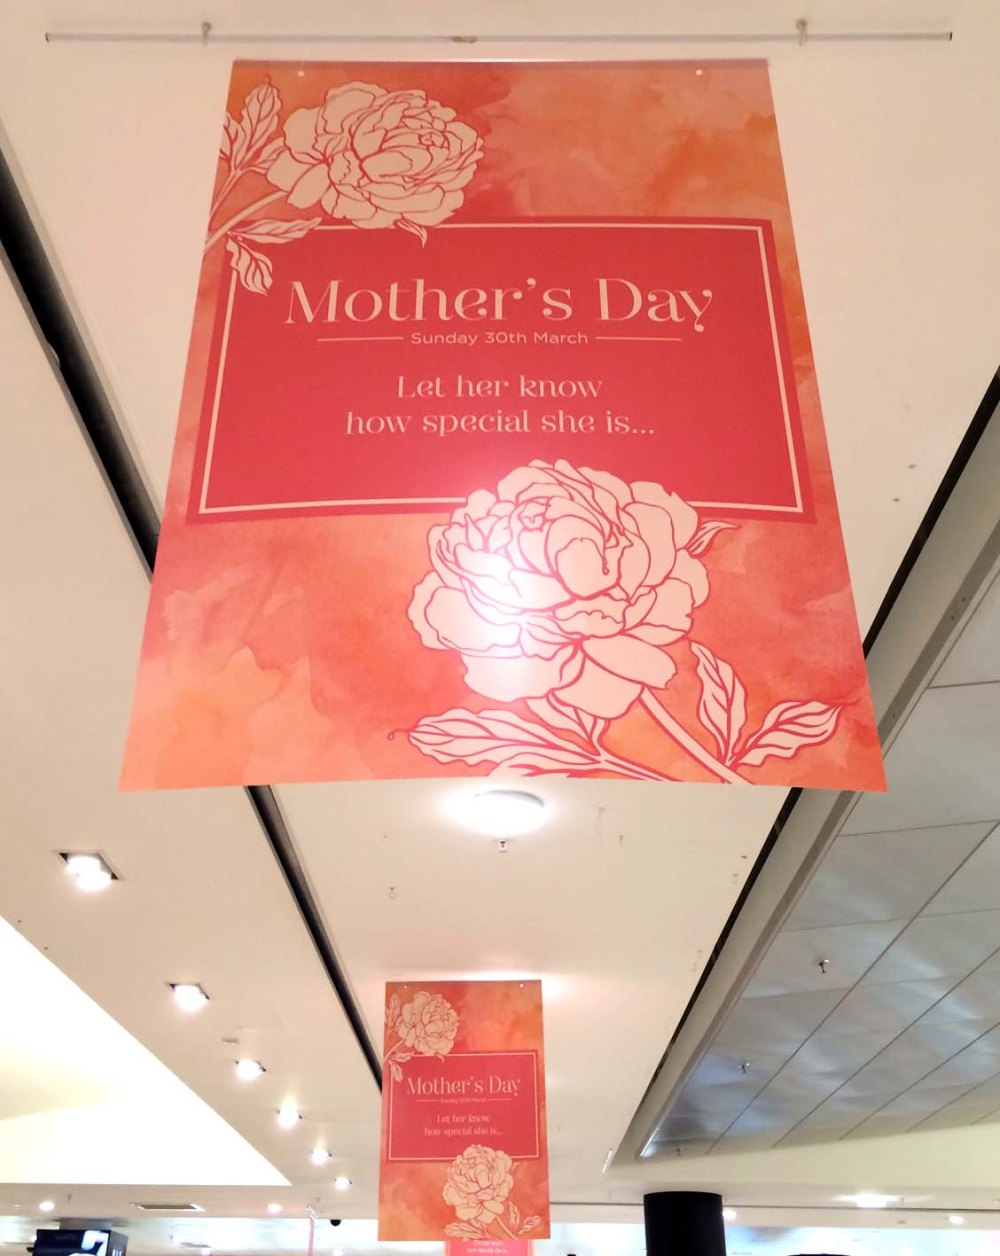 HOUSE OF FRASER_1_mothers_day_14